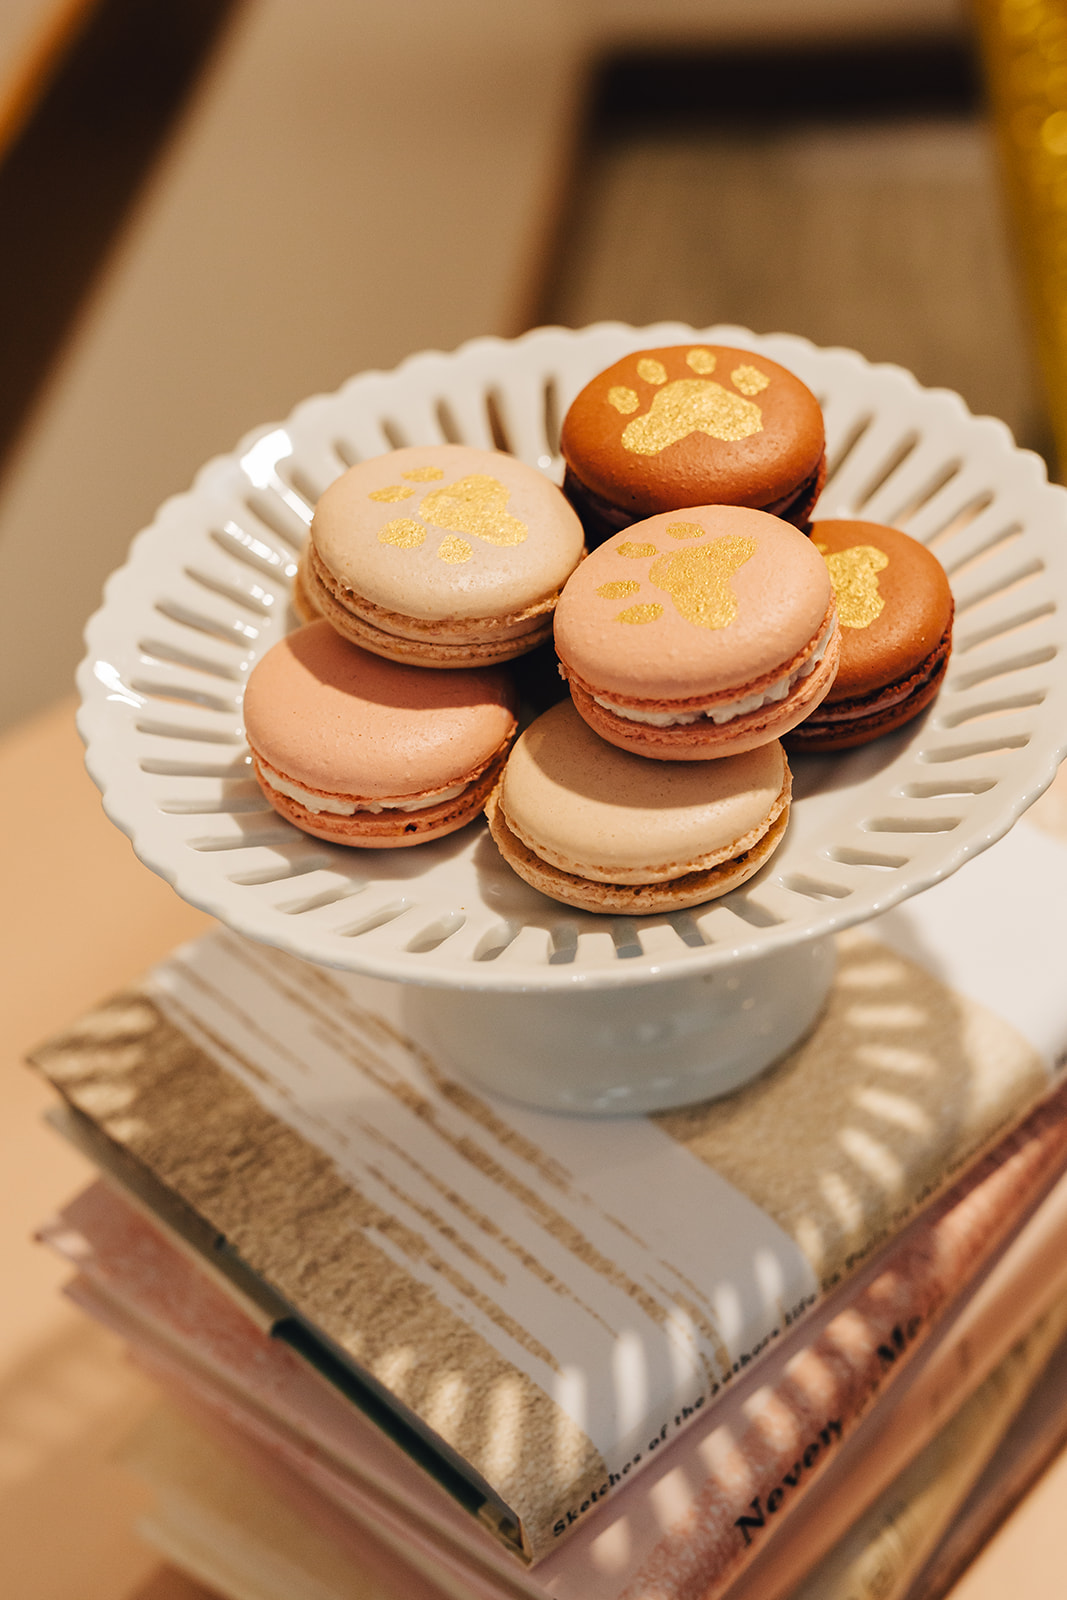 Macaroons with paw prints on them